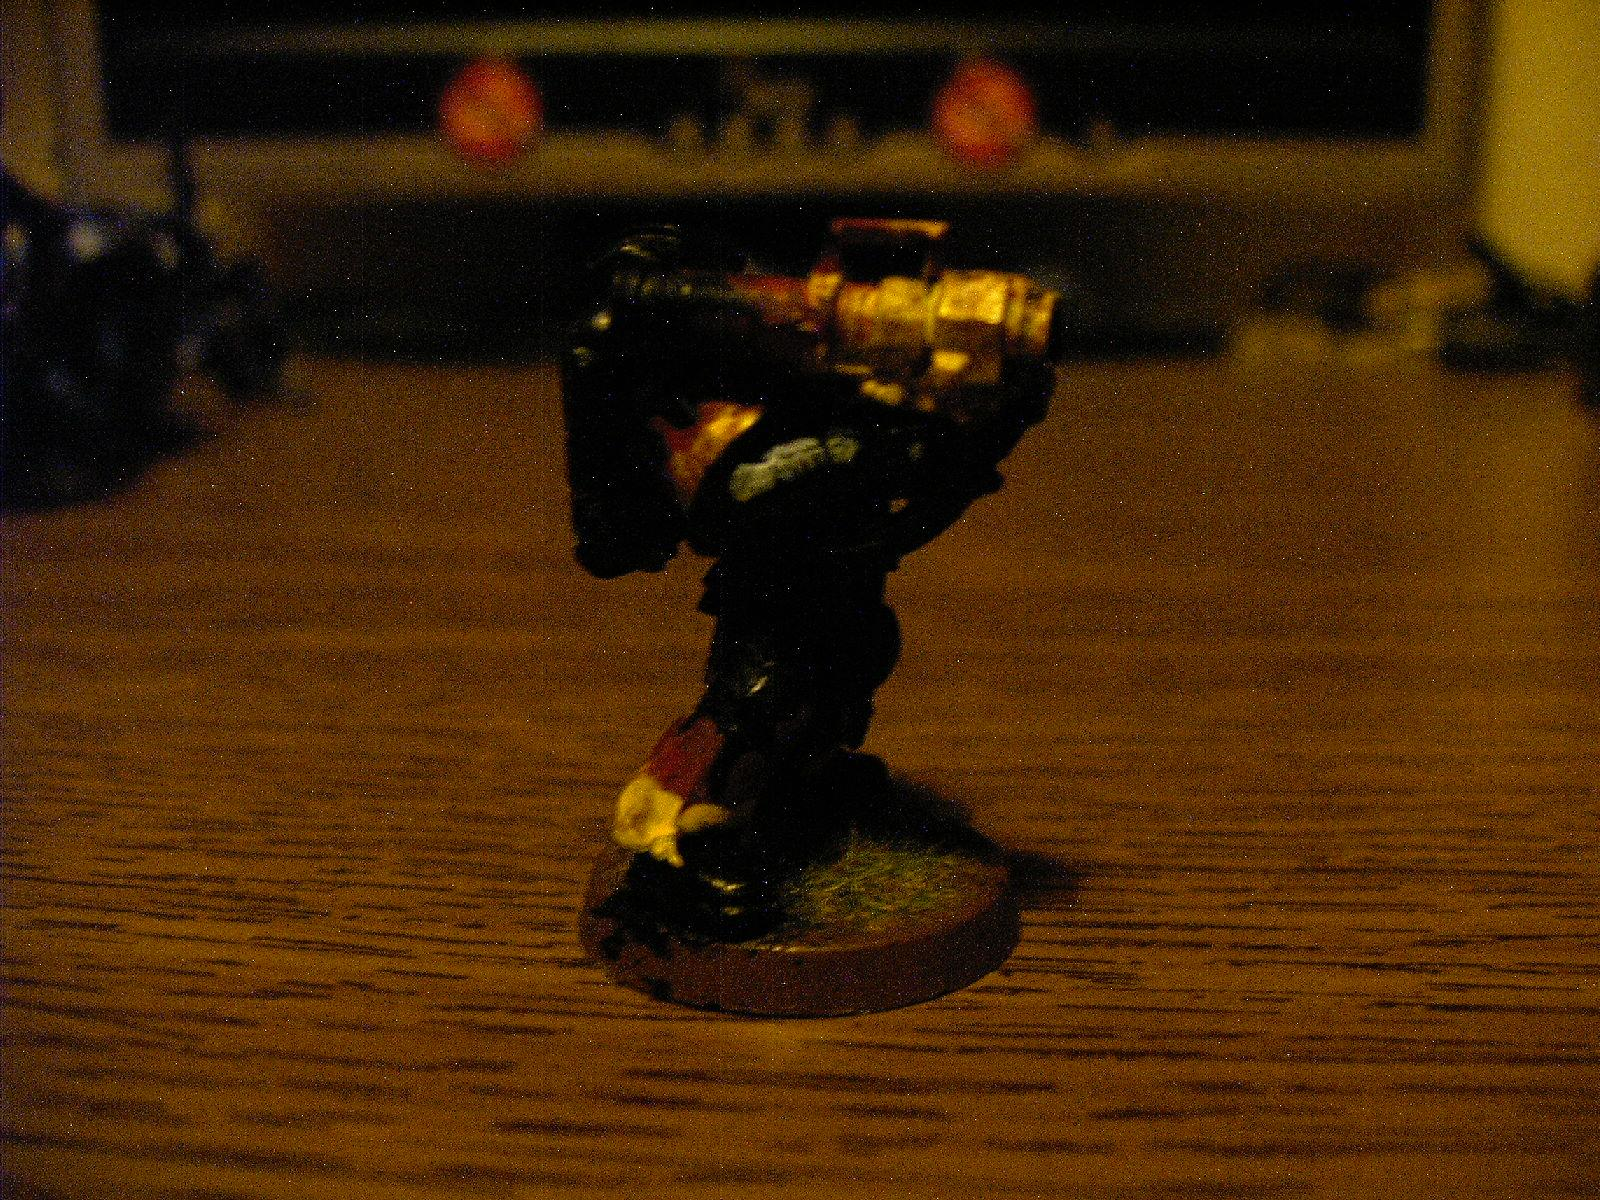 and the Legionnaire with missile launcher ;)